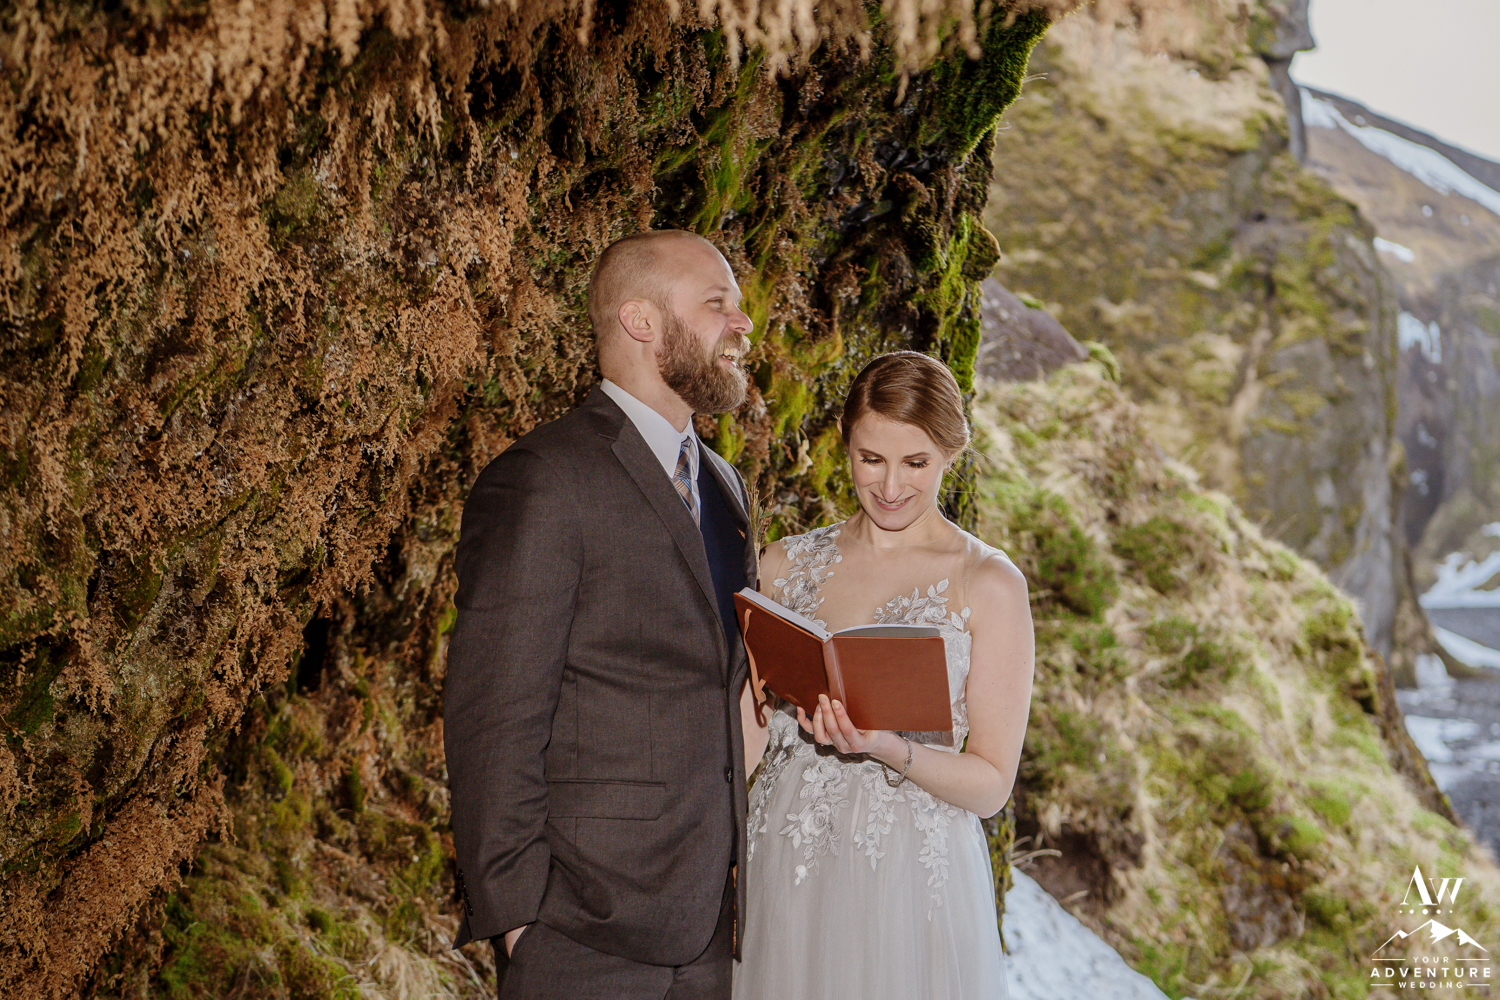 Couple says wedding vows in Cave in Iceland